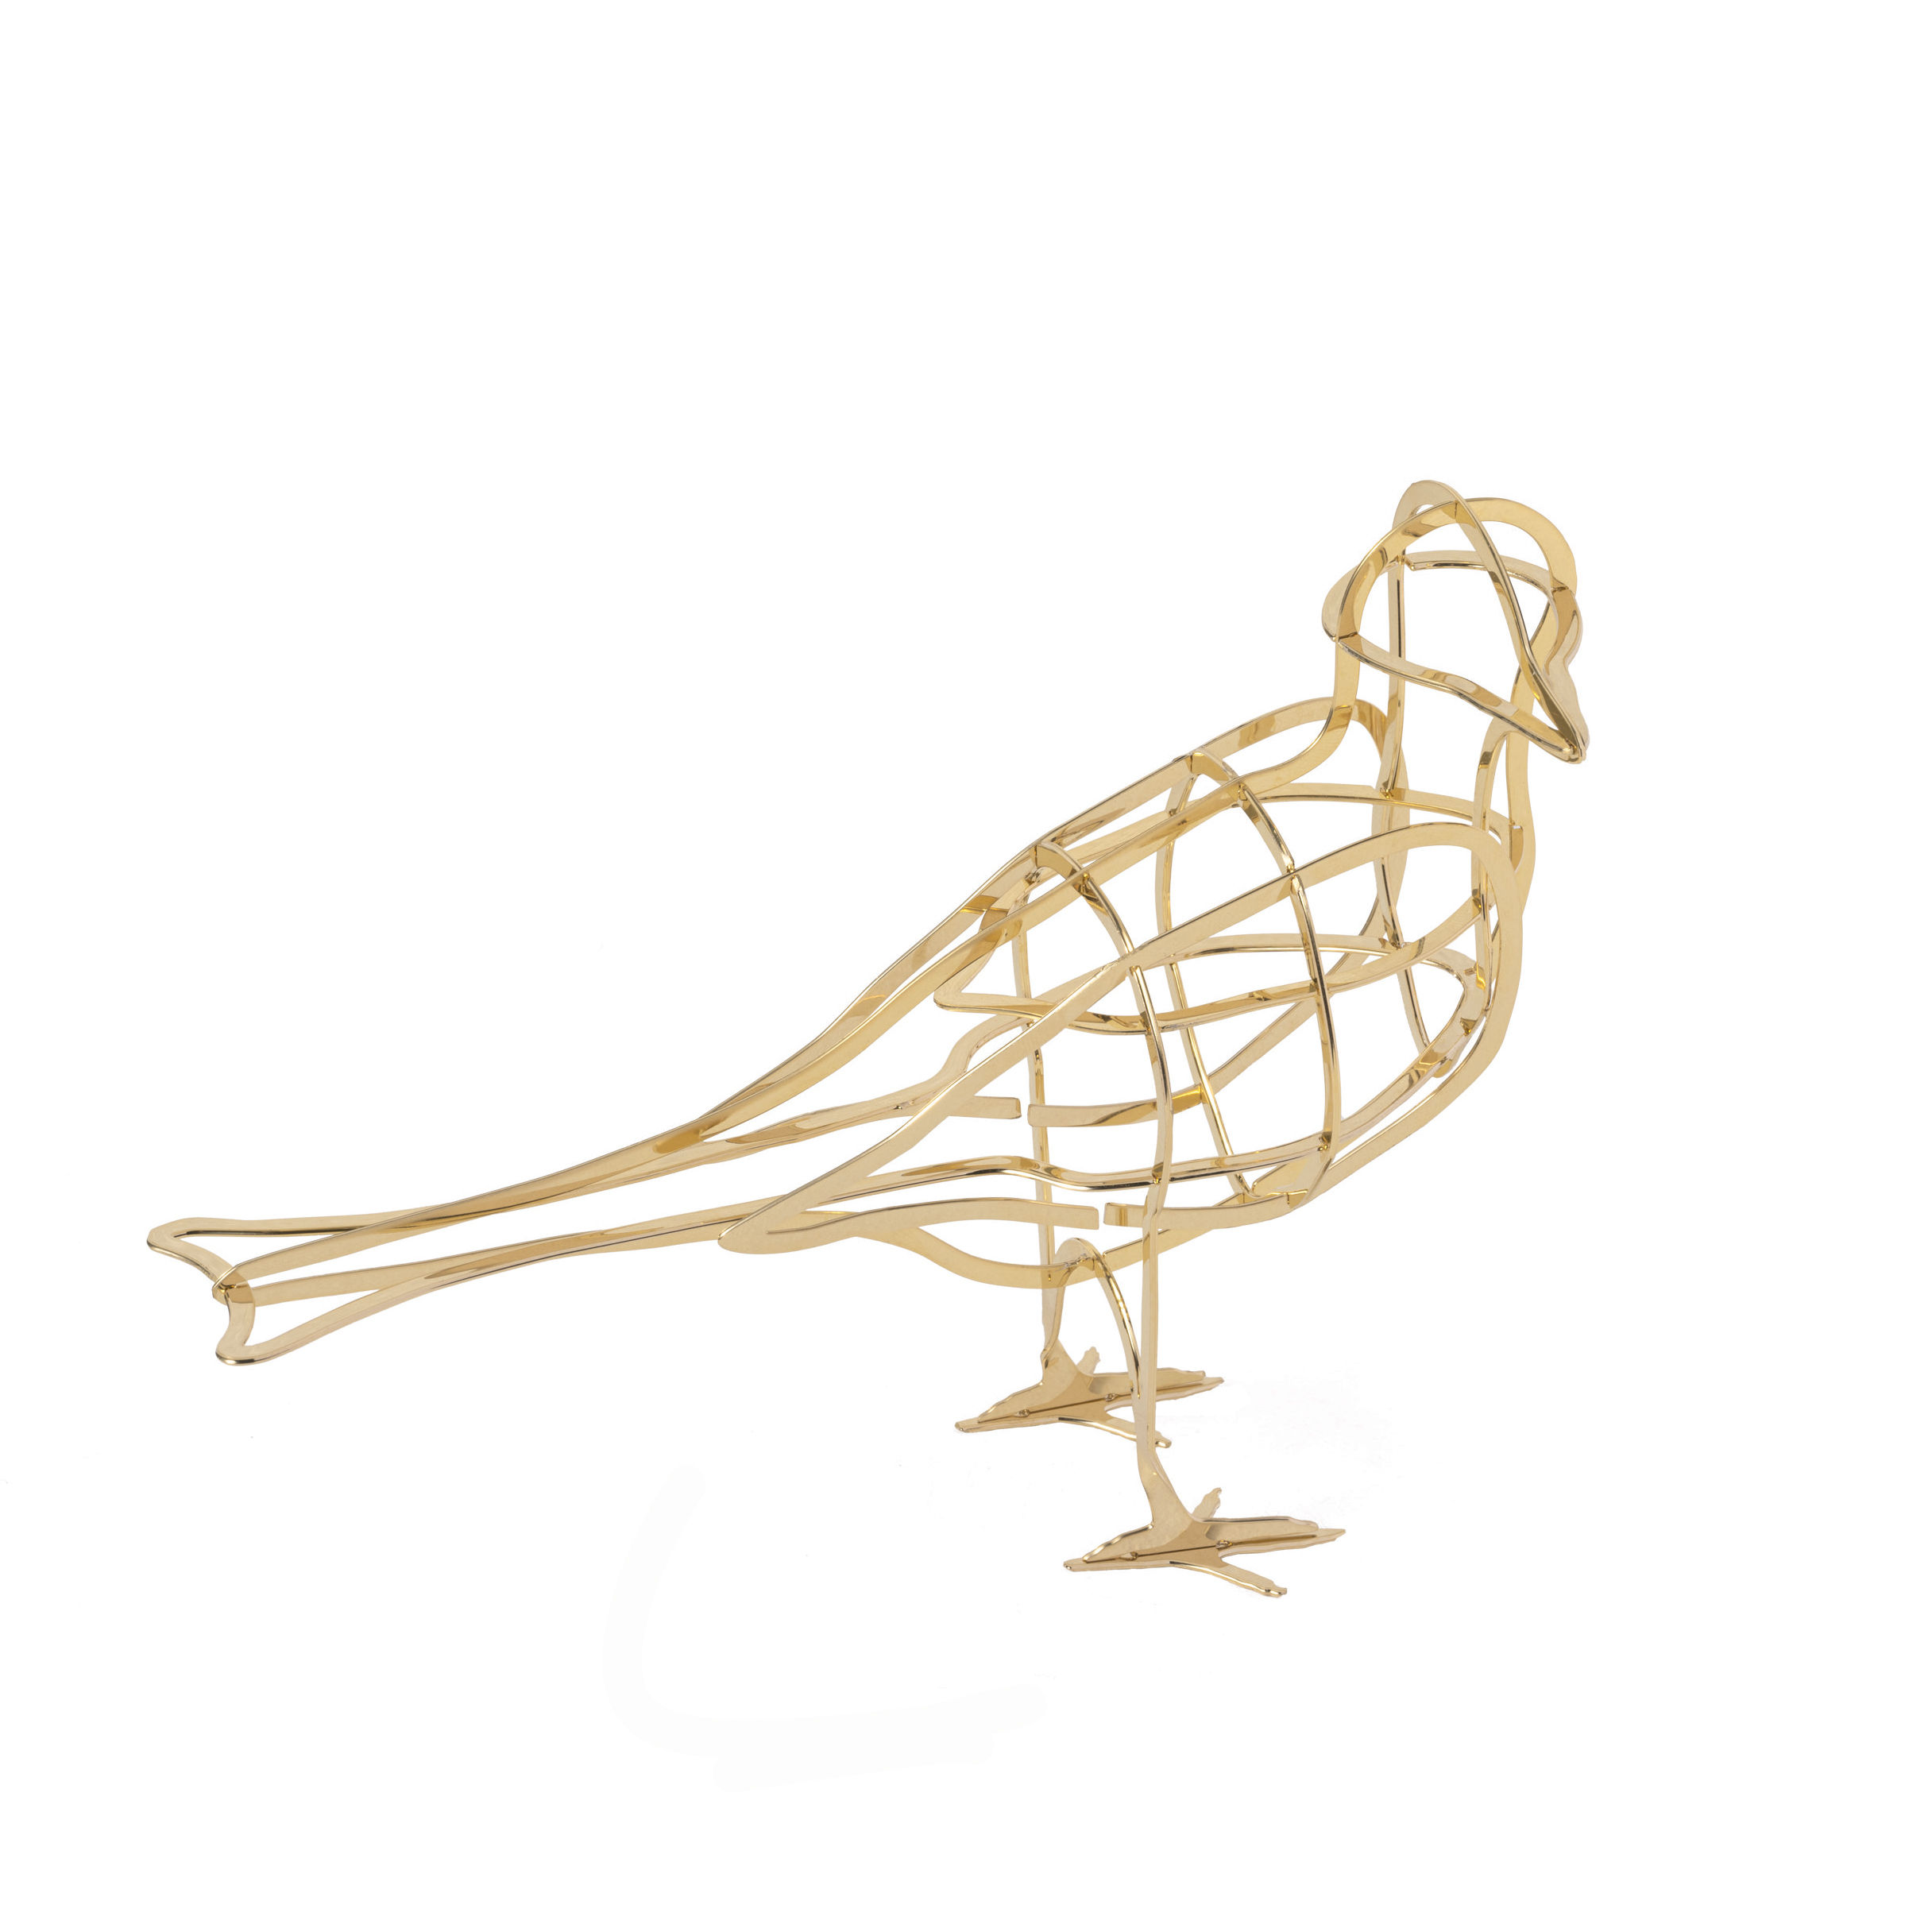 Decoration - Home Accessories - À l'Aube Decoration - / Metal bird by Ibride - To Dawn / Gold - Gold galvanised metal